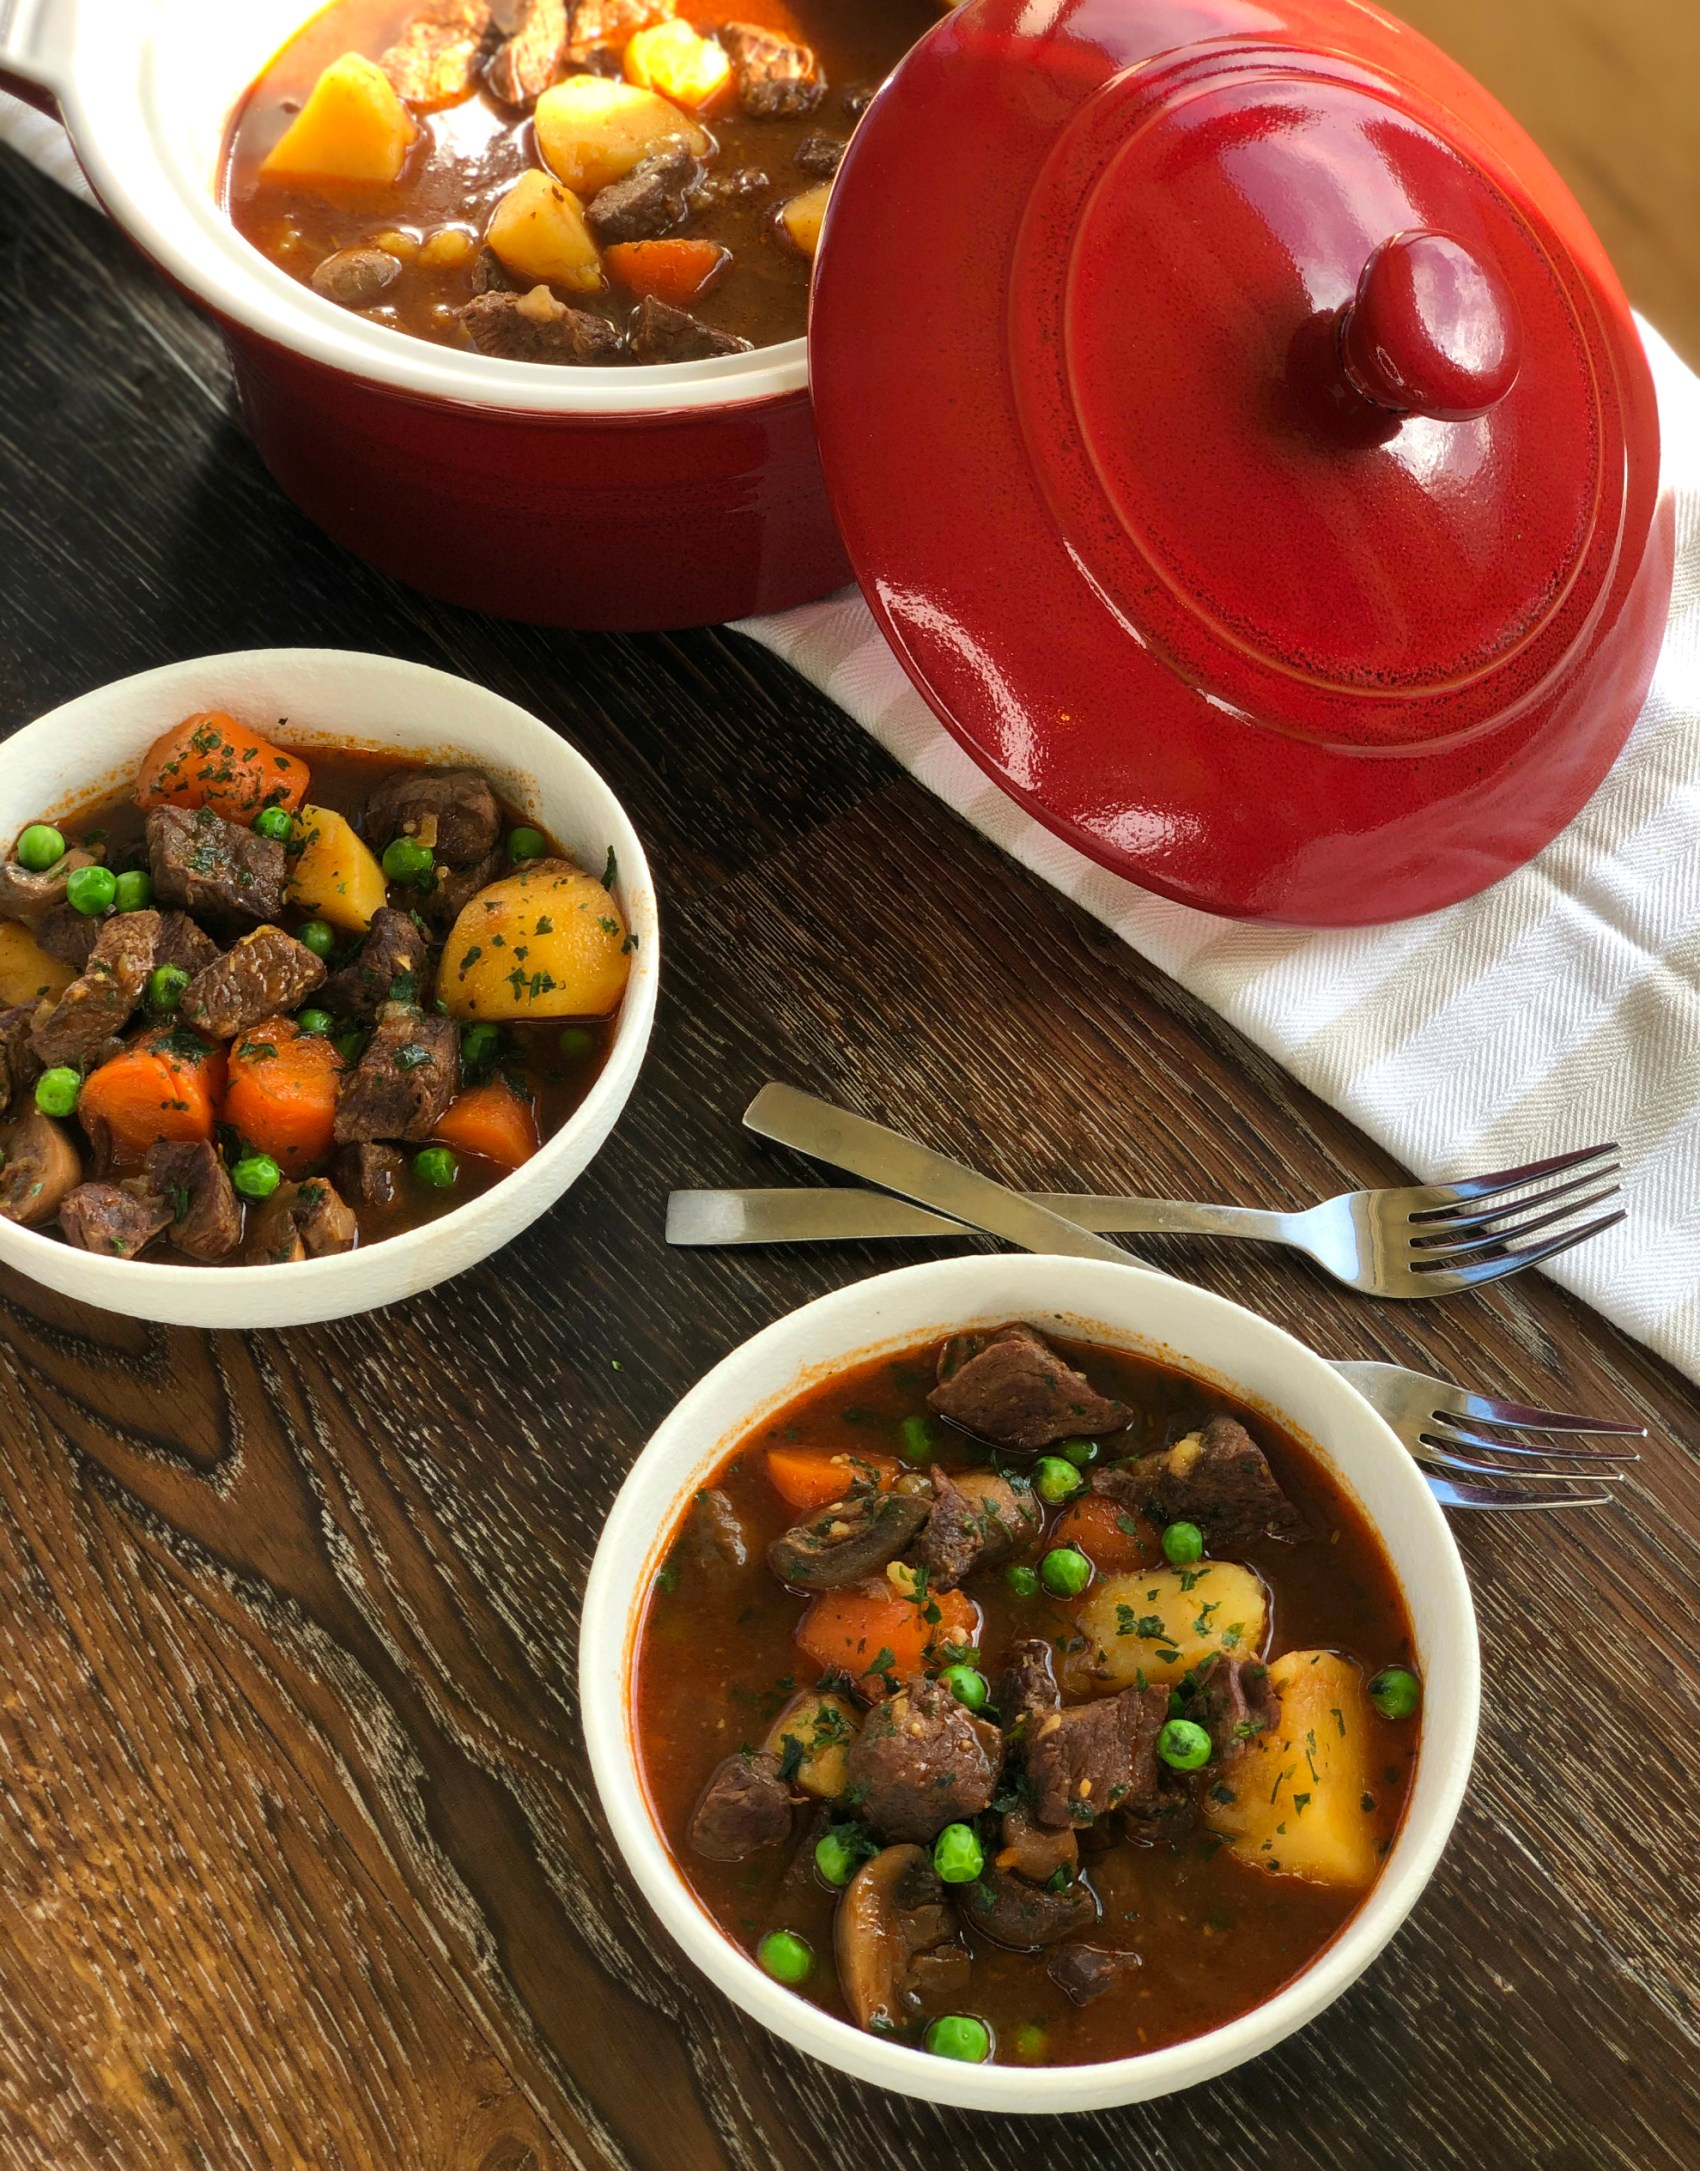 Casserole dish full of Slow Cooker Beef Stew